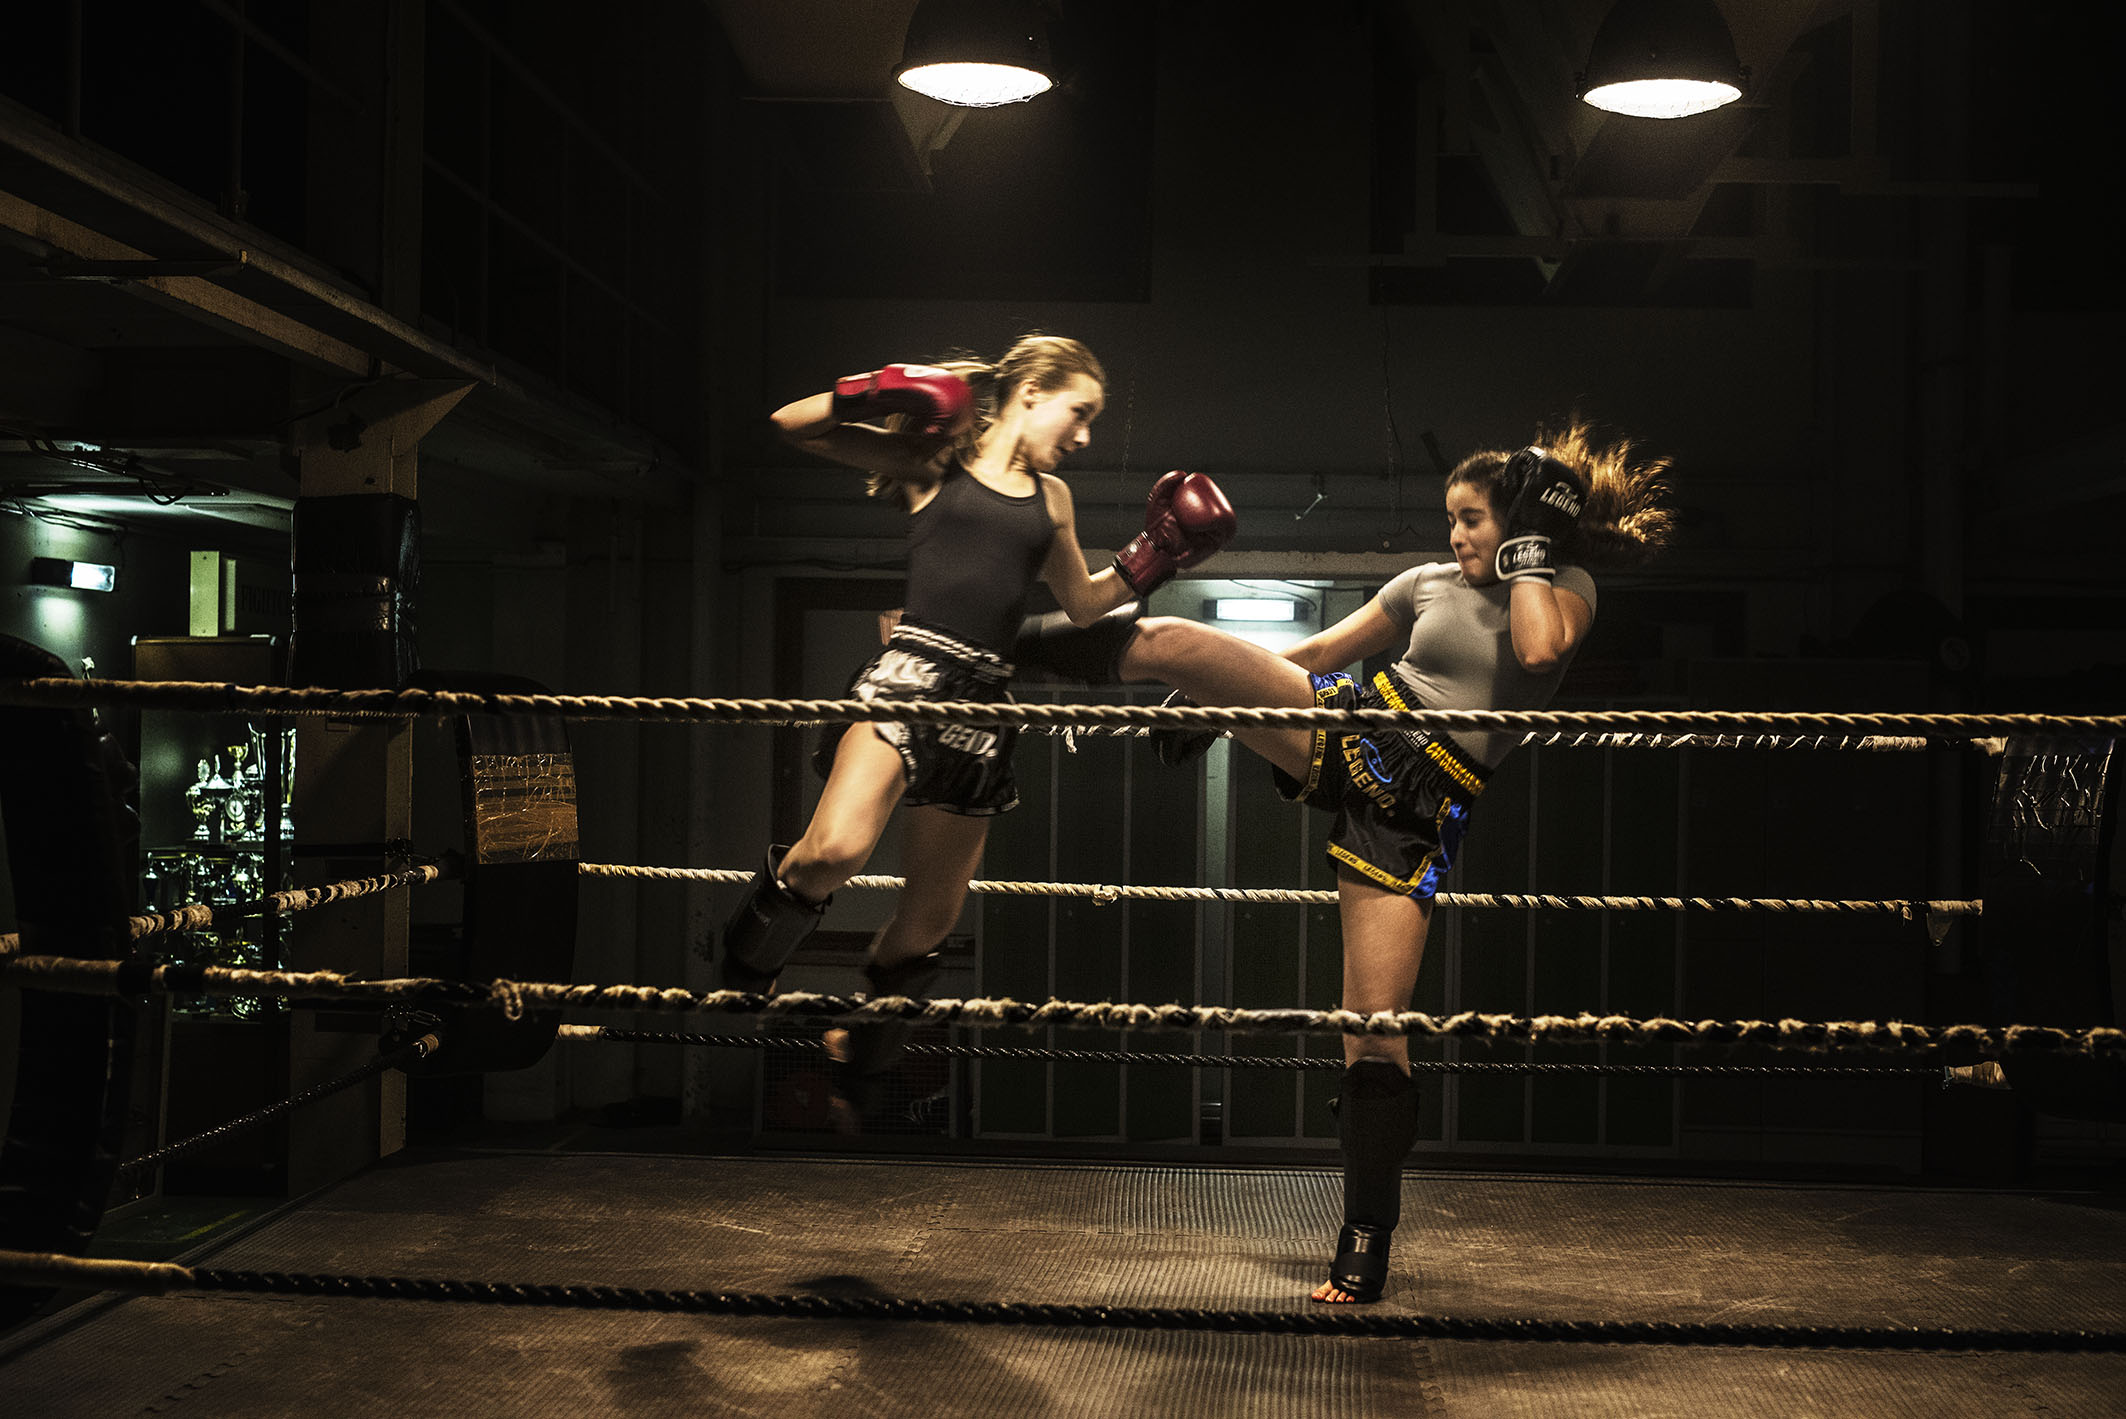 Fight girl 3